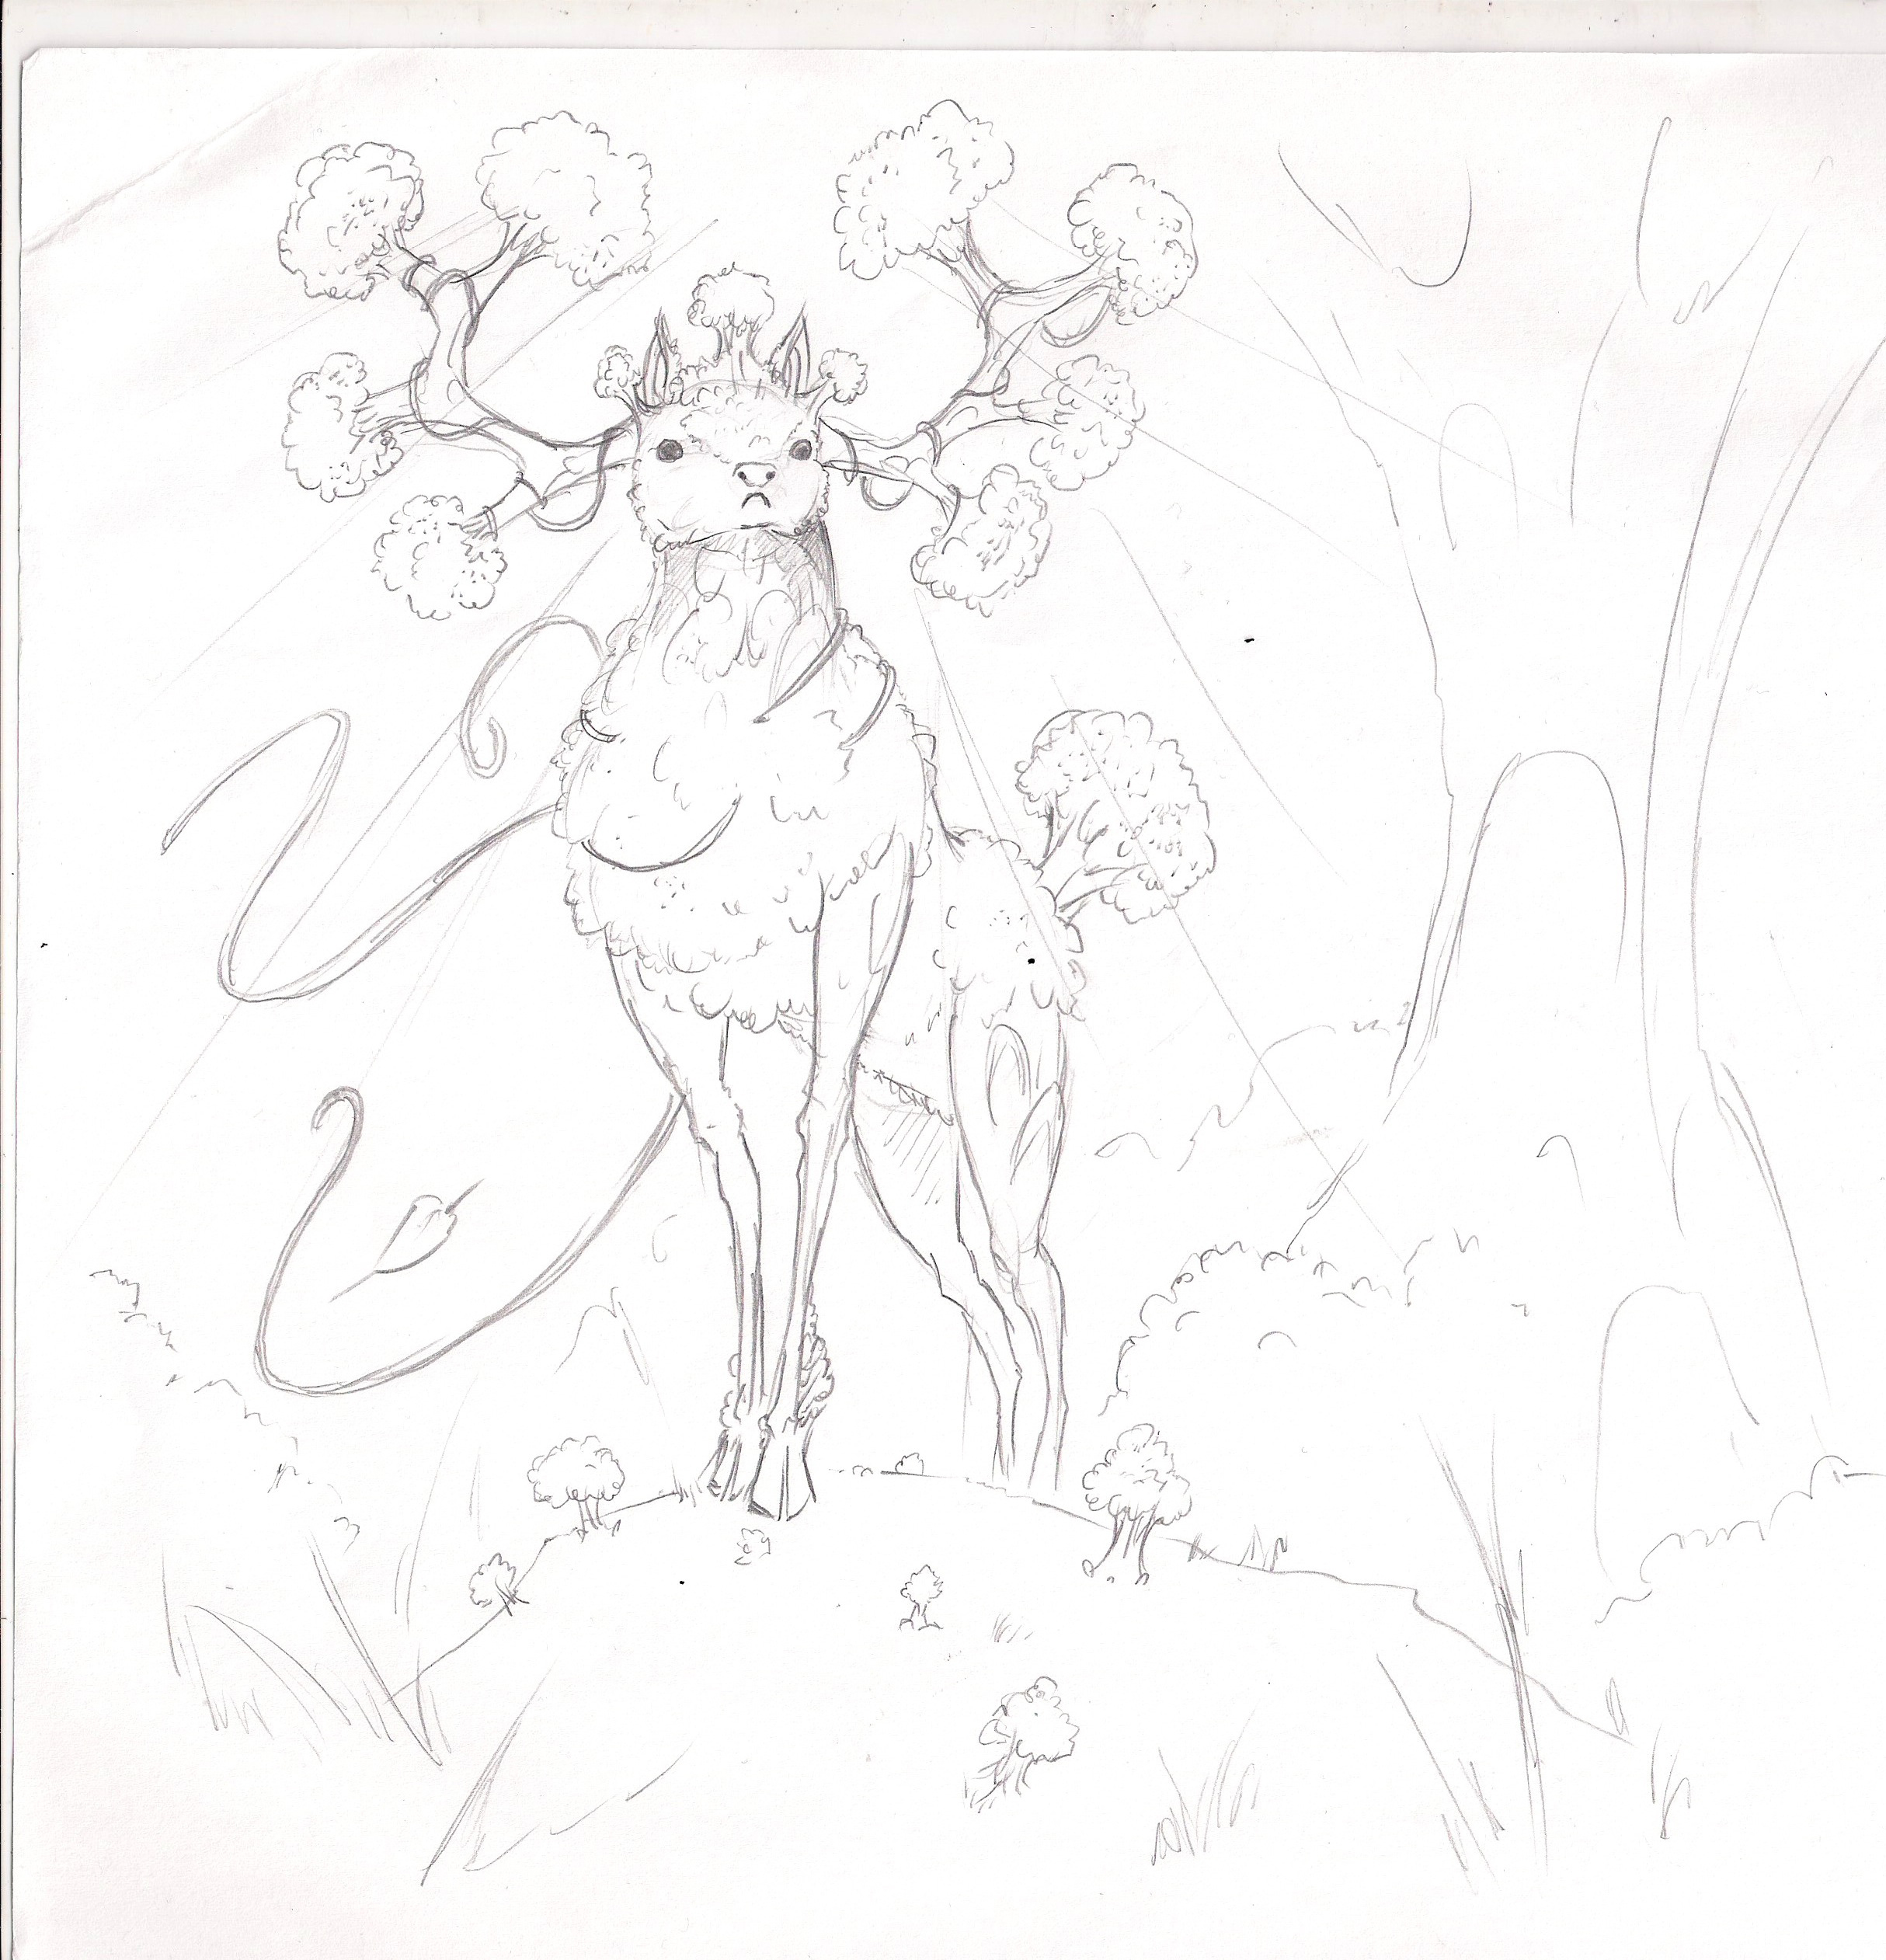 se_broccolistag_draft_02